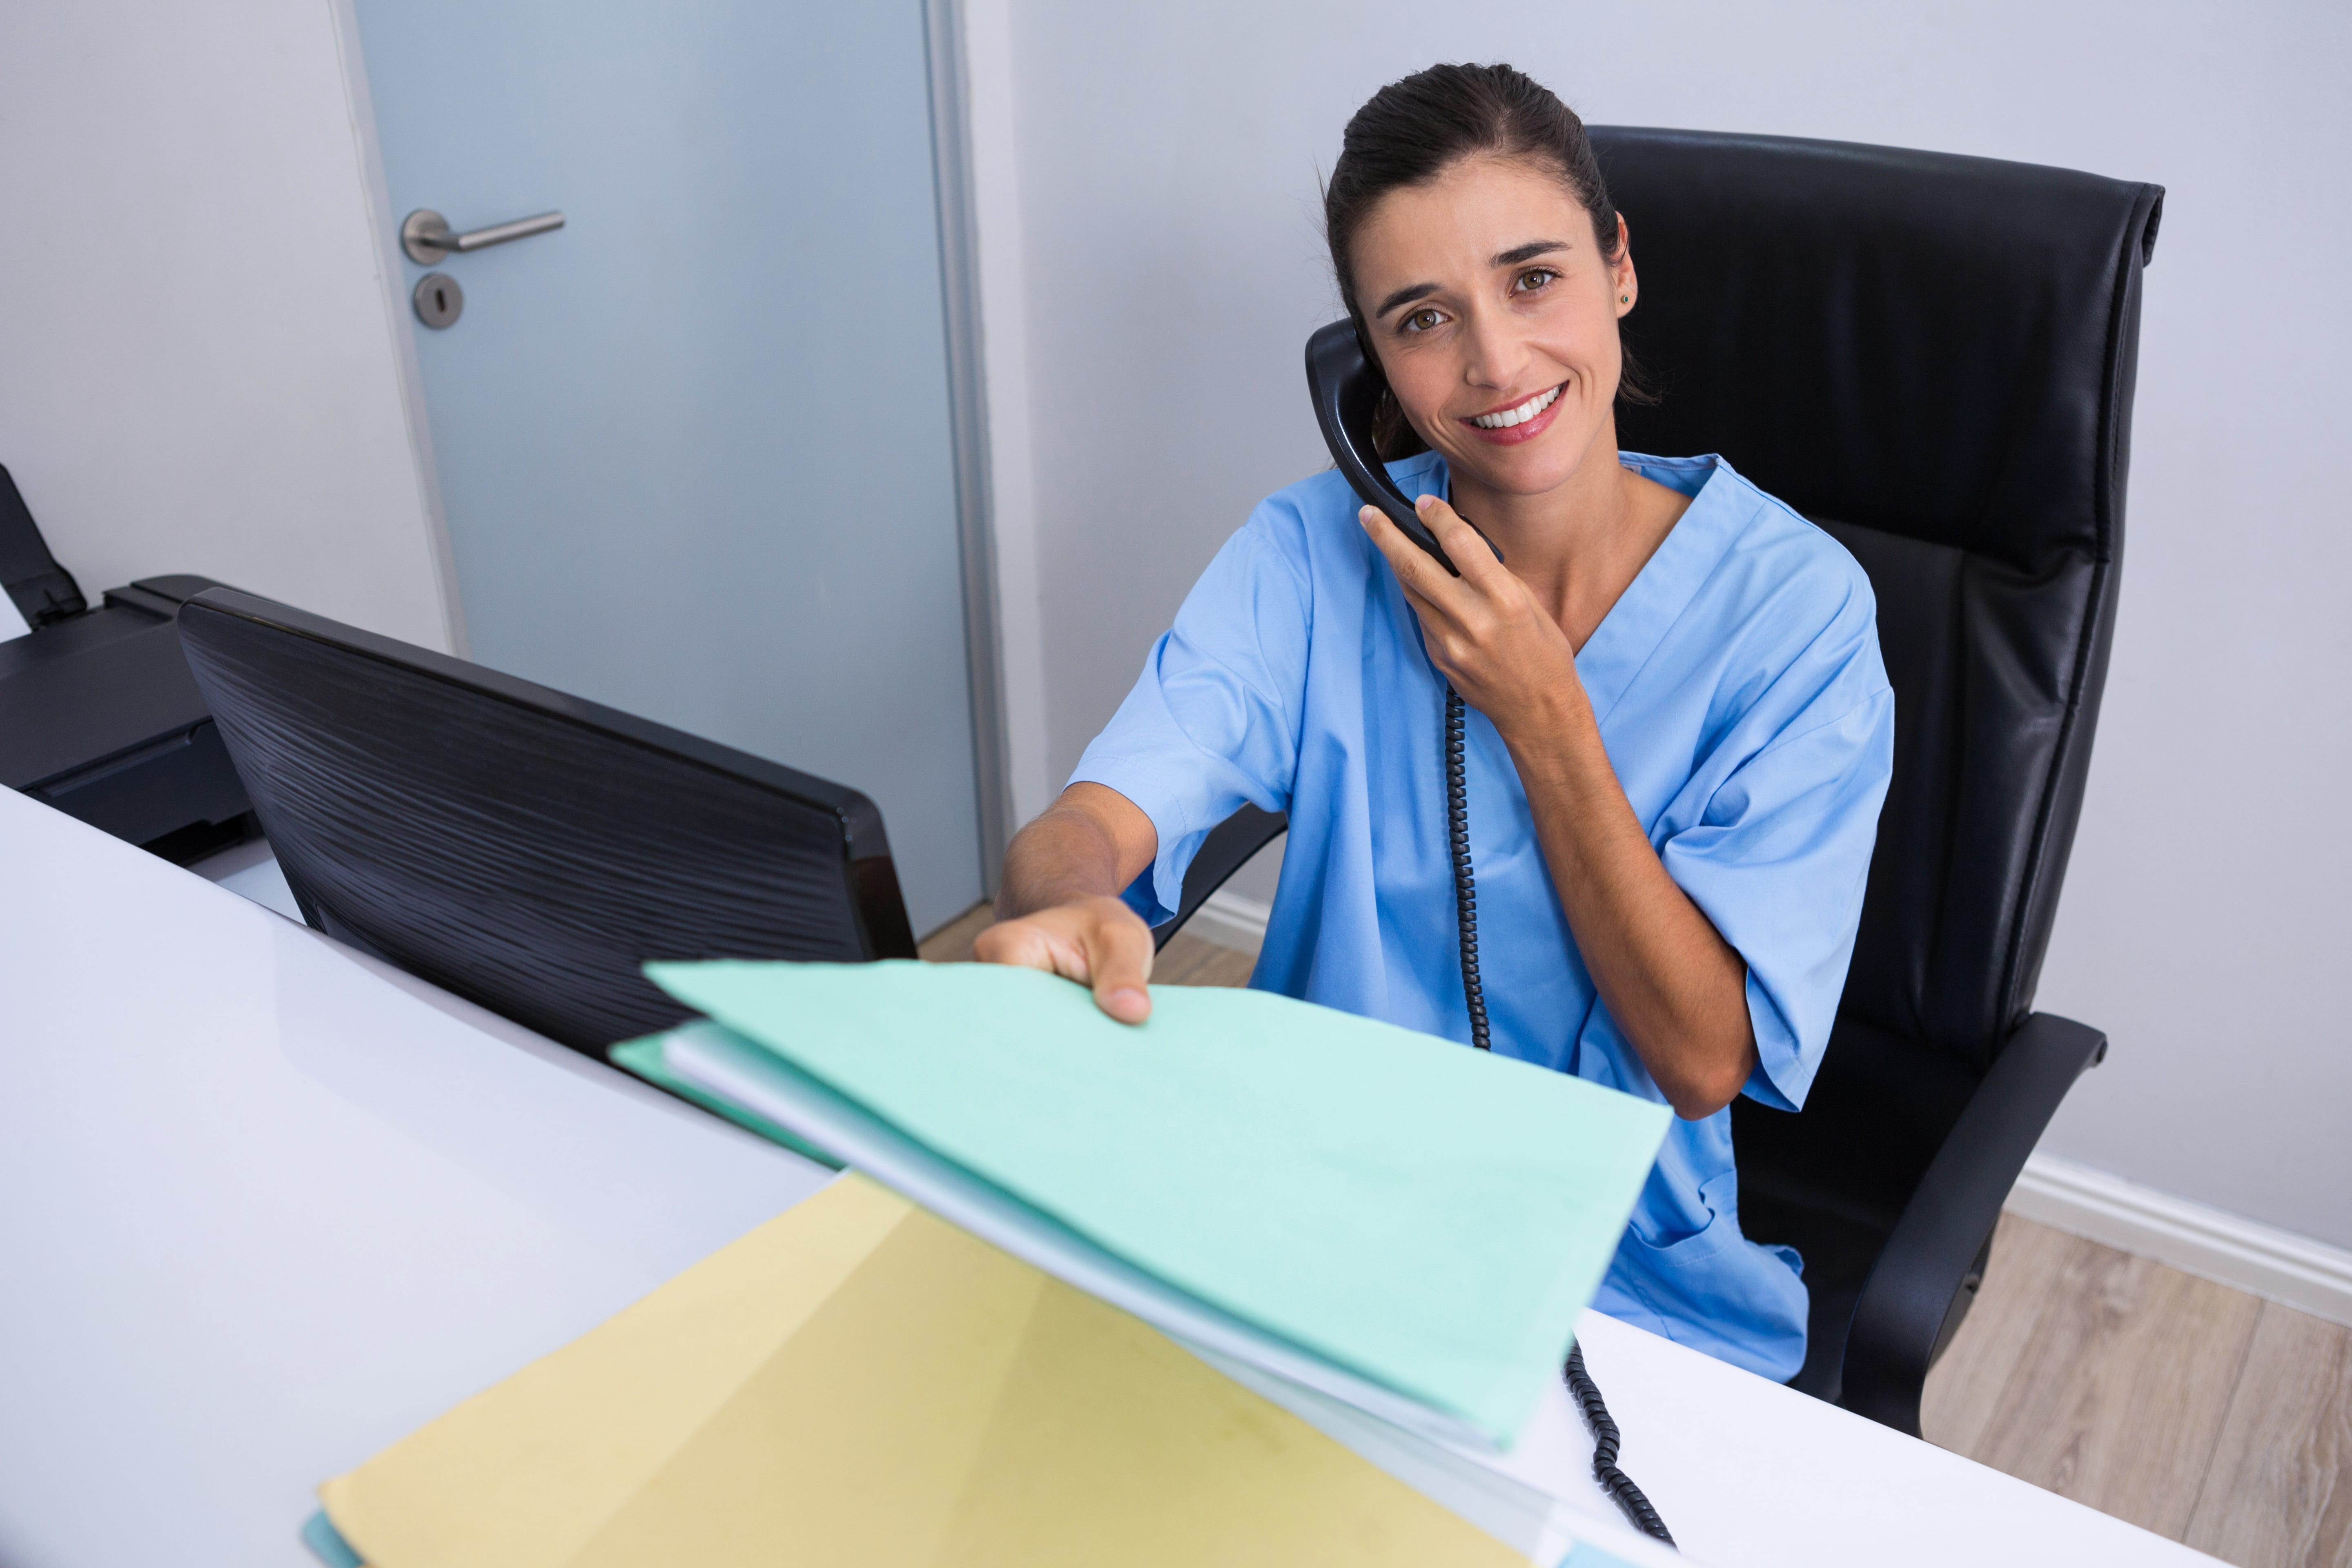 Dental Office Telephone Scripts ⋆ As The Drill Turns